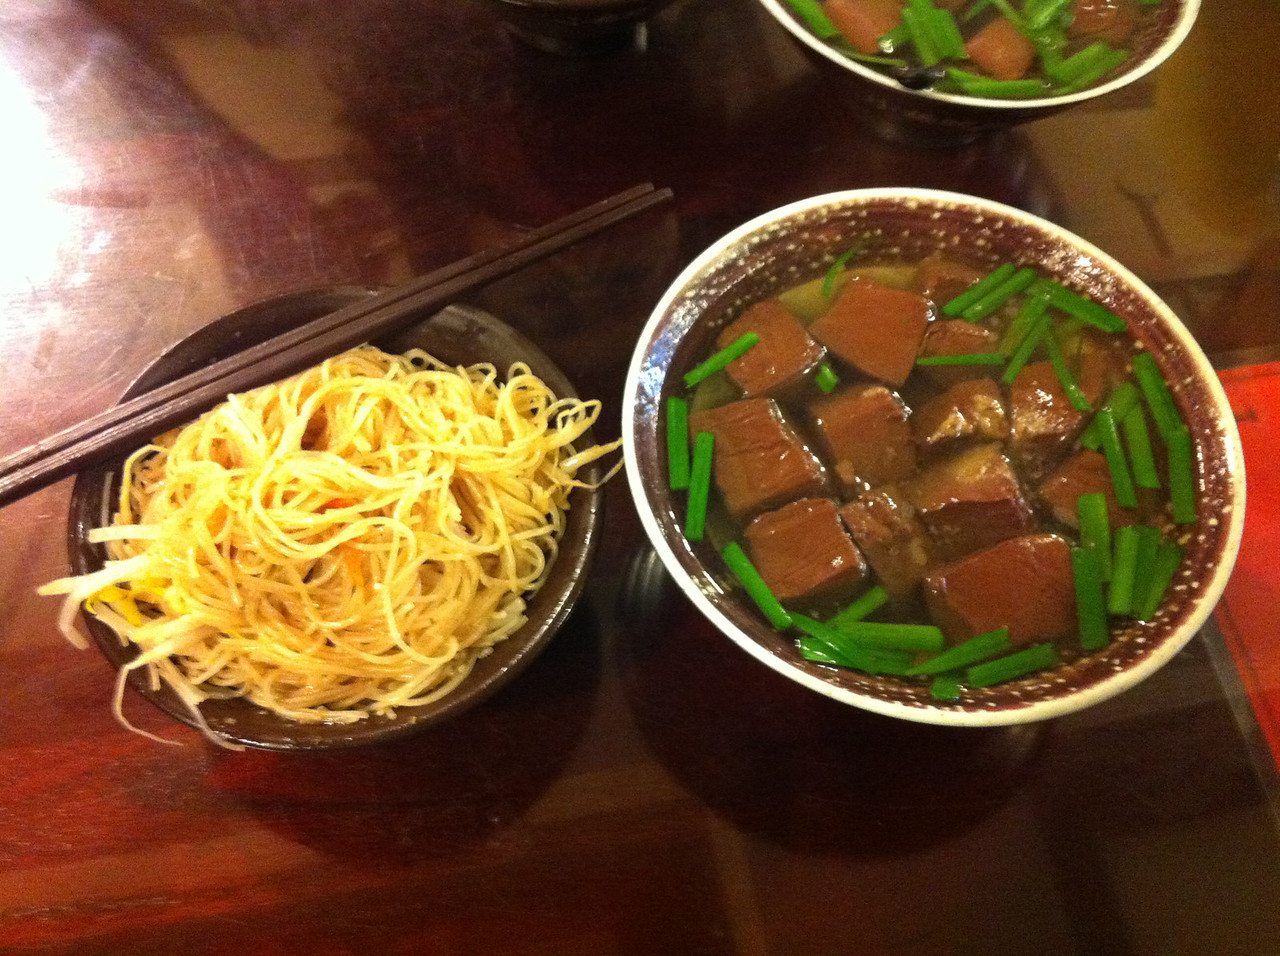 My Taiwanese lunch: rice noodles & pork blood soup.